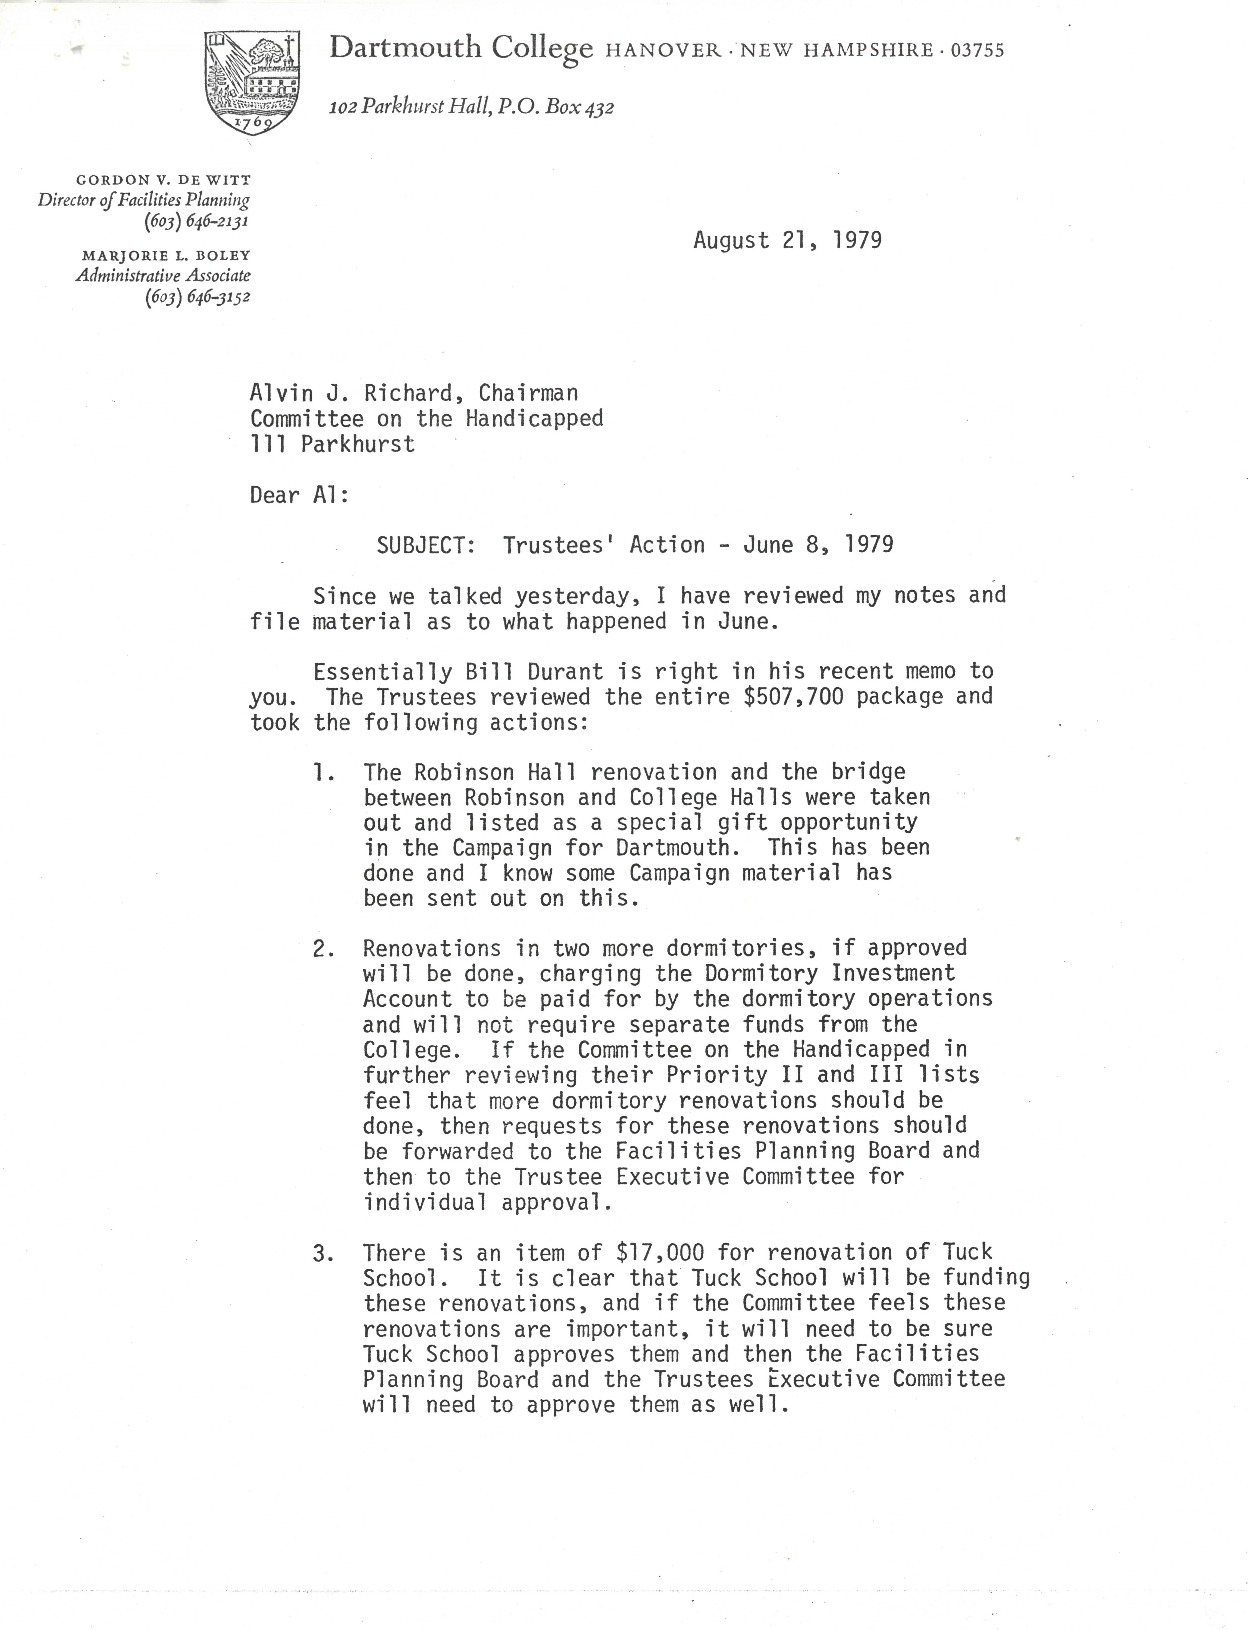 """An internal memo sent on the same day that the Trustees voted on the Priority II and III budget, in which the Committee is informed that the remaining items on the Priority II and III budgets (e.g. beyond Tuck School, dormitories, and Robinson Hall) will require individual approval from both the Facilities Planning Board and the Trustees Executive Committee. In order to avoid committing the College to funding accessibility renovations unless absolutely necessary, the memo states that a """"go-slow"""" posture should be adopted to make room for gift opportunities."""